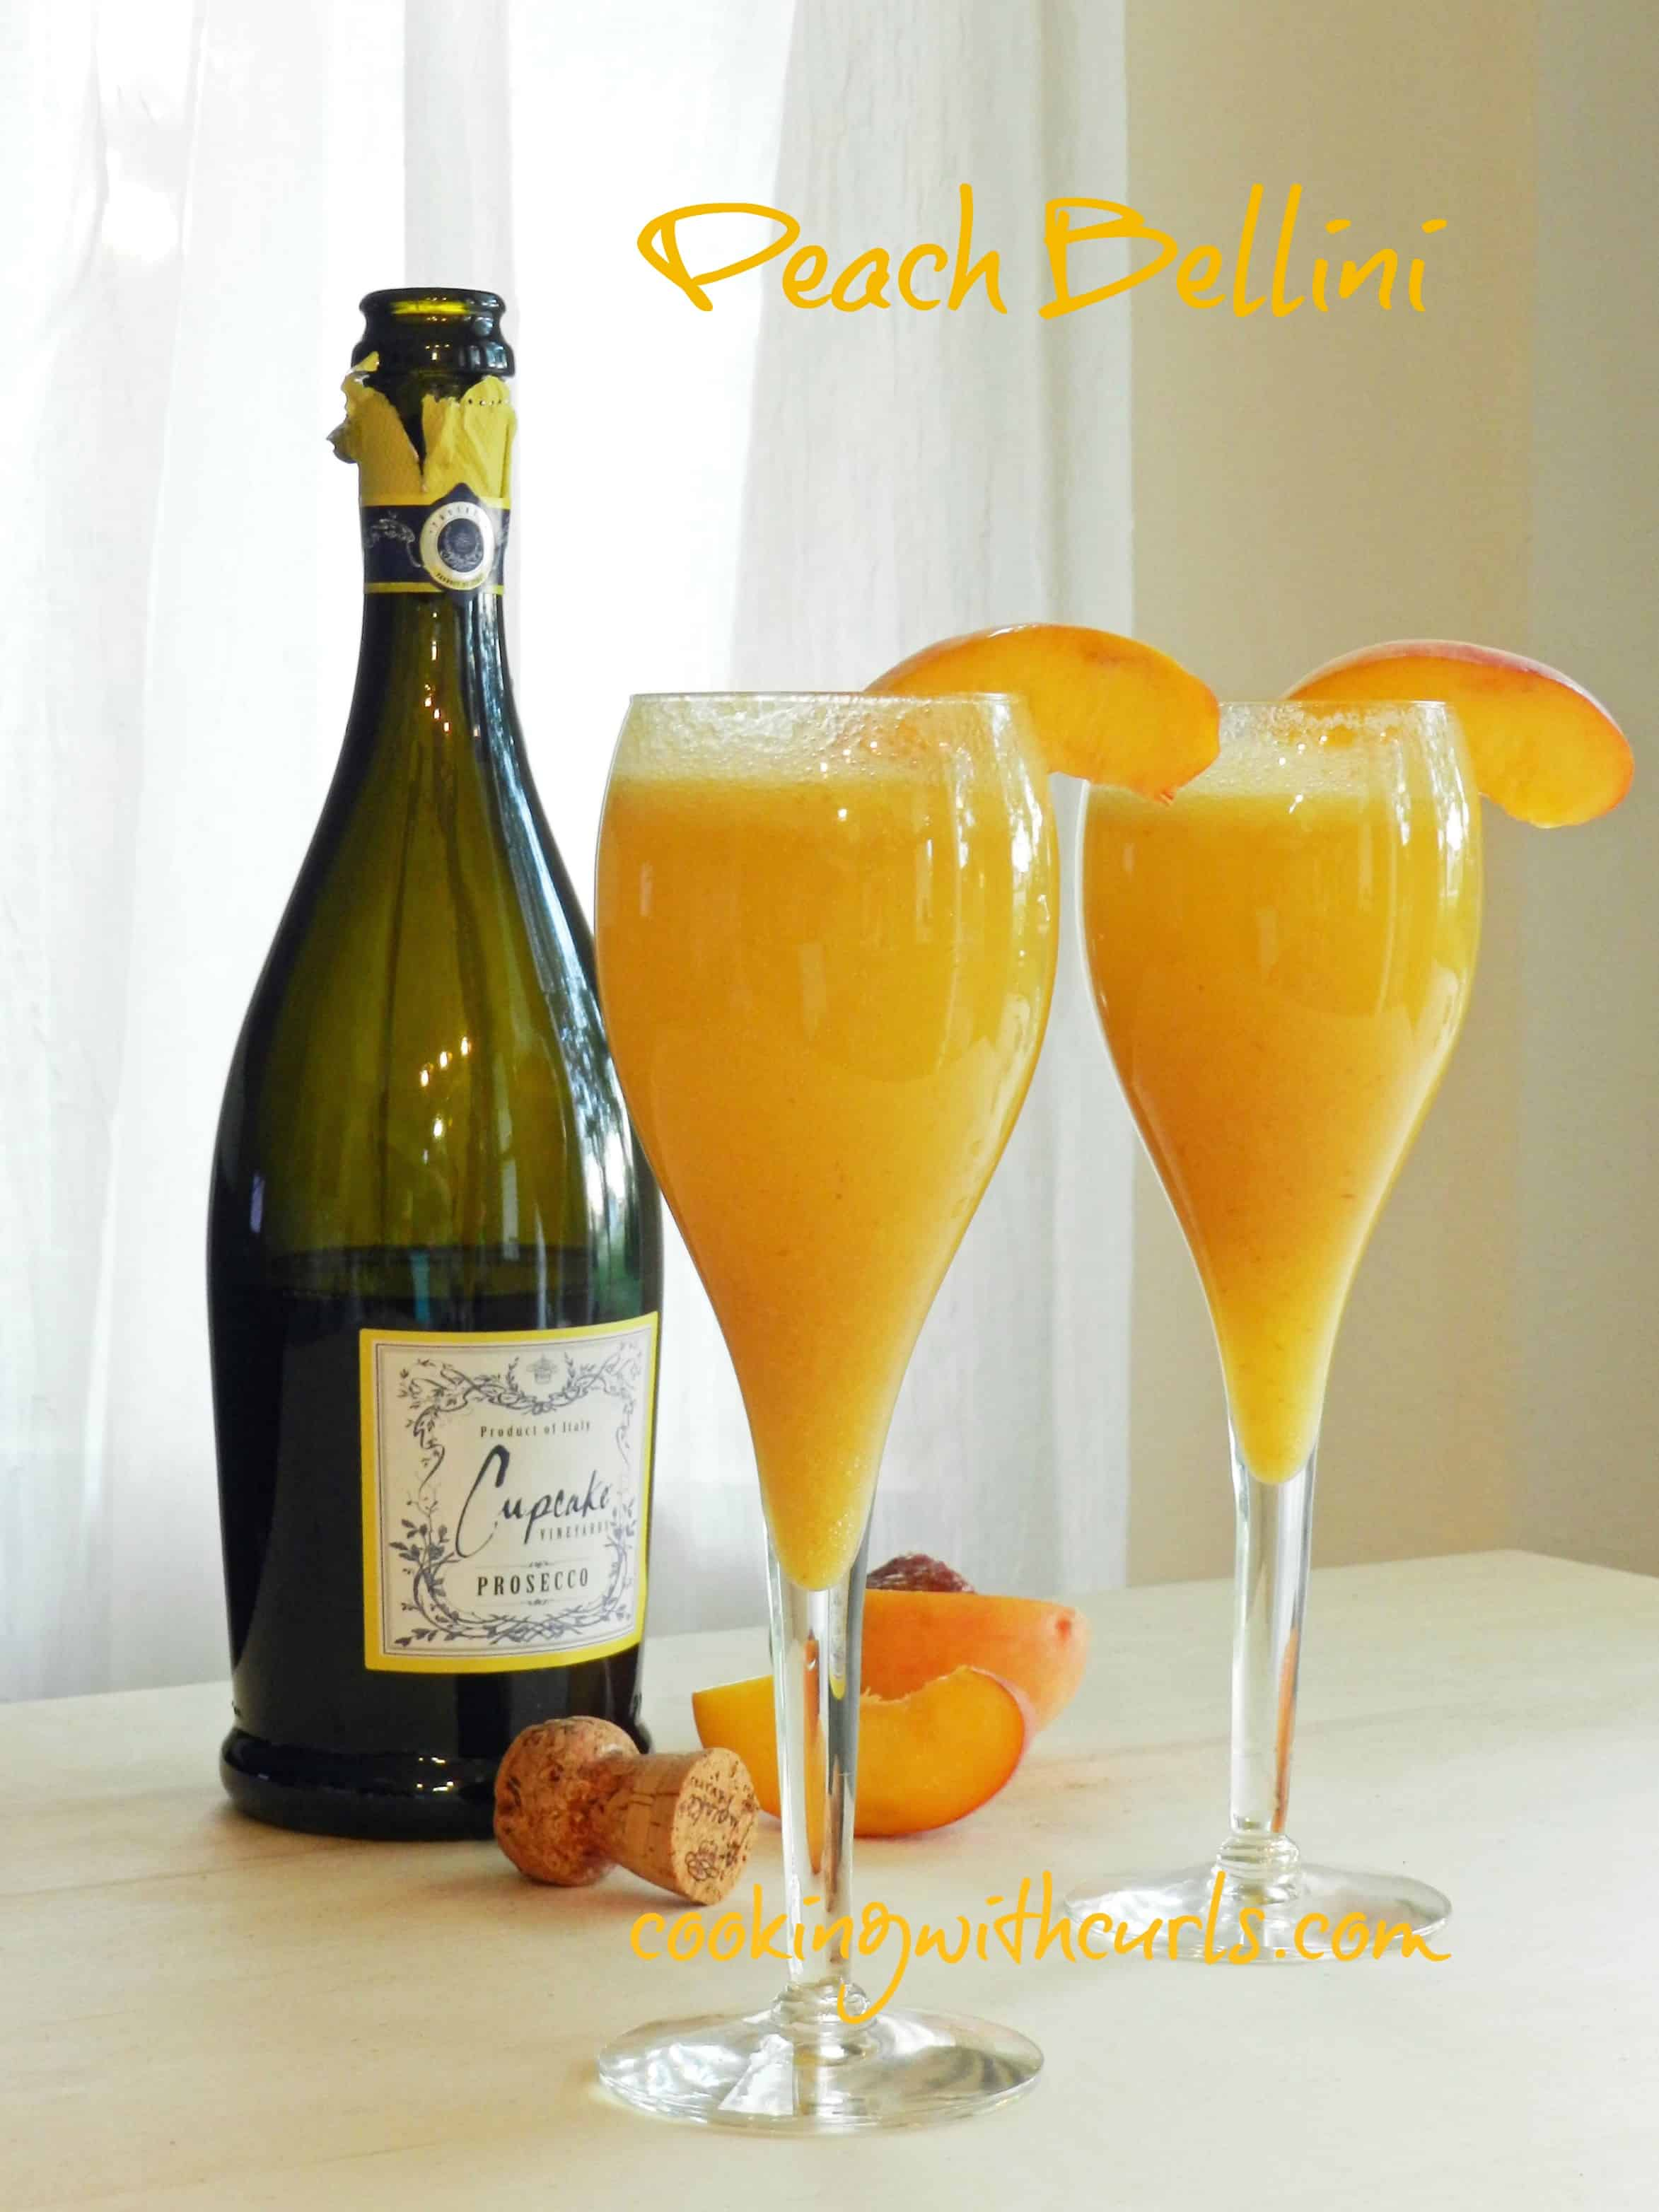 Peach bellini recipe foodie for Bellini cocktail